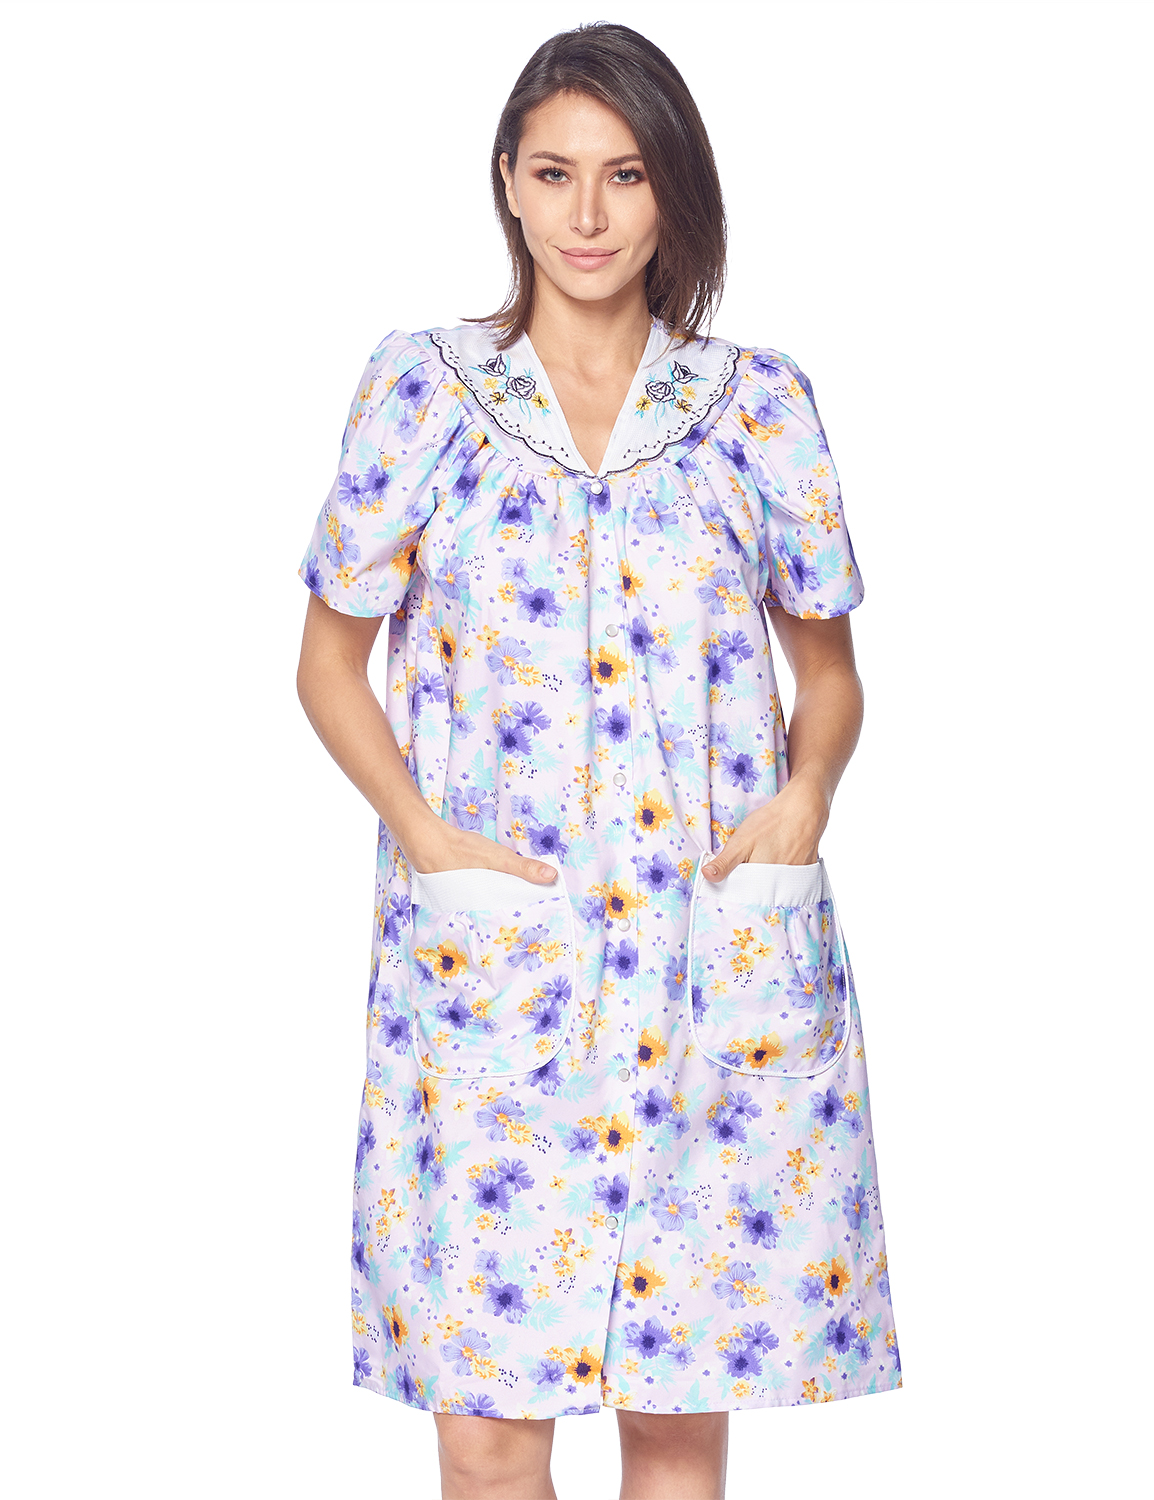 Casual Nights Women's Snap Front House Dress Short Sleeve Woven Housecoat Duster Lounger Robe, Floral Purple, Medium